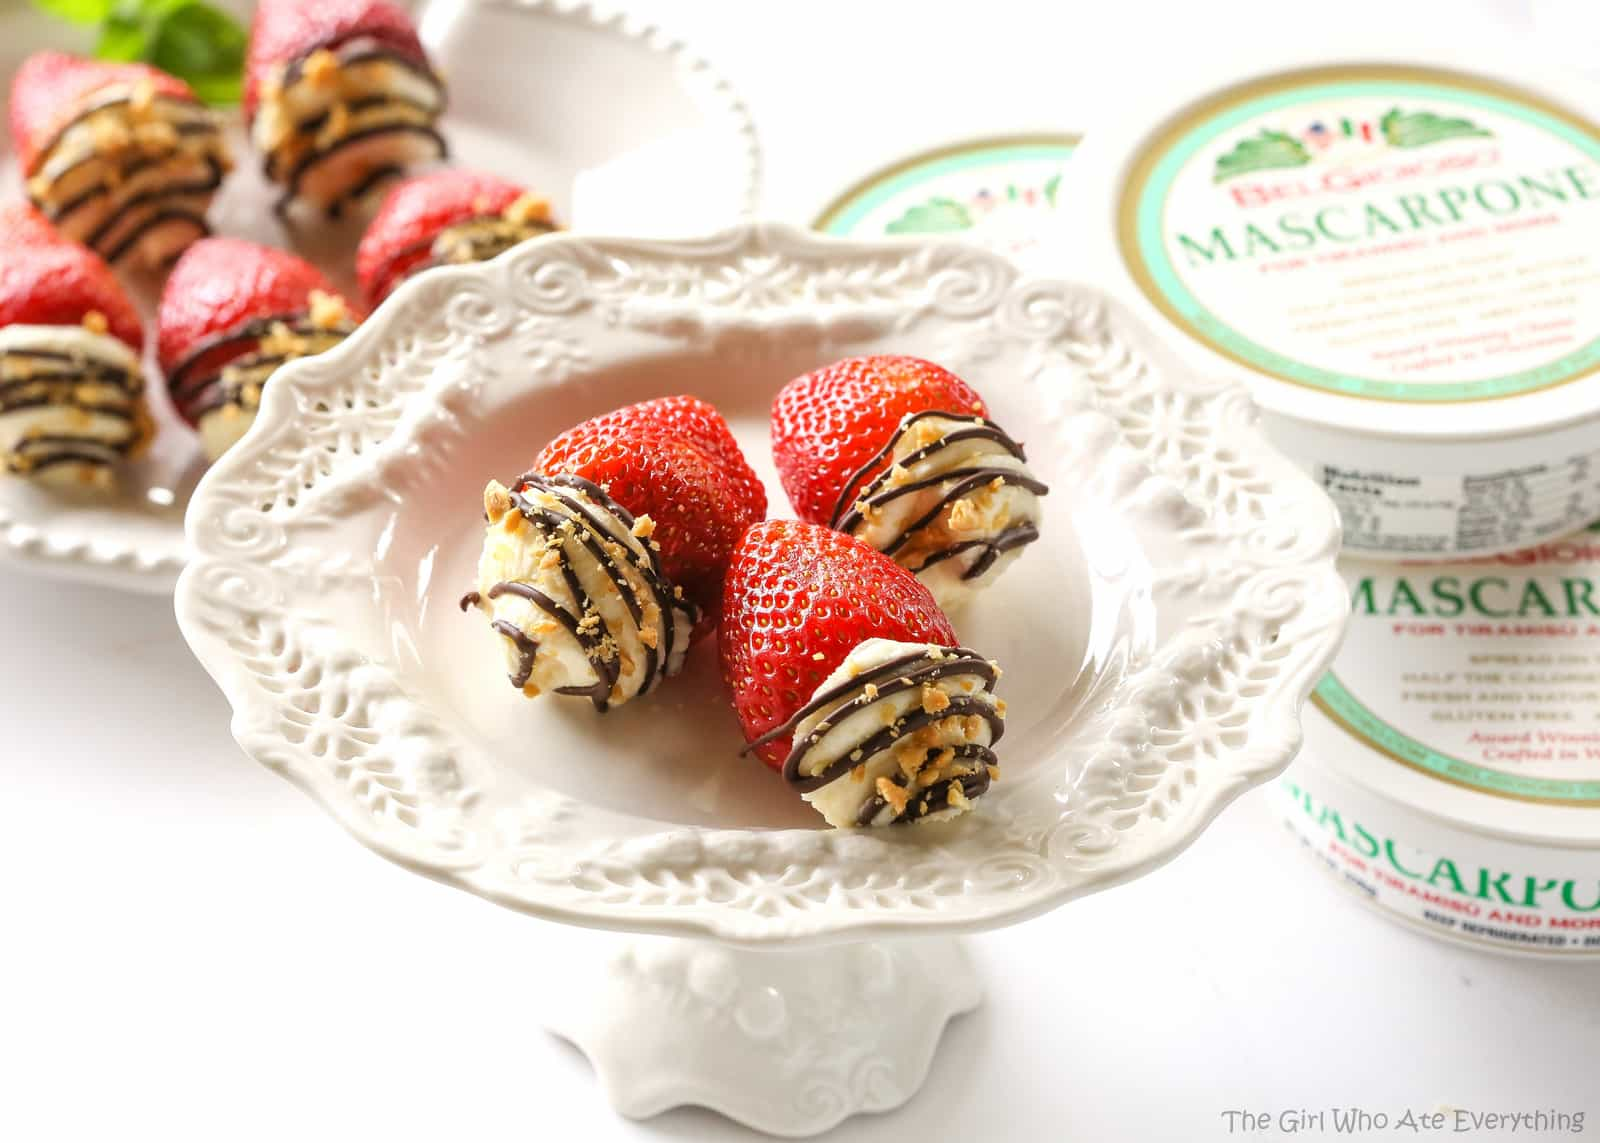 Mascarpone Stuffed Strawberrries. Sweet and silky mascarpone filled strawberries drizzled with chocolate and nuts. the-girl-who-ate-everything.com